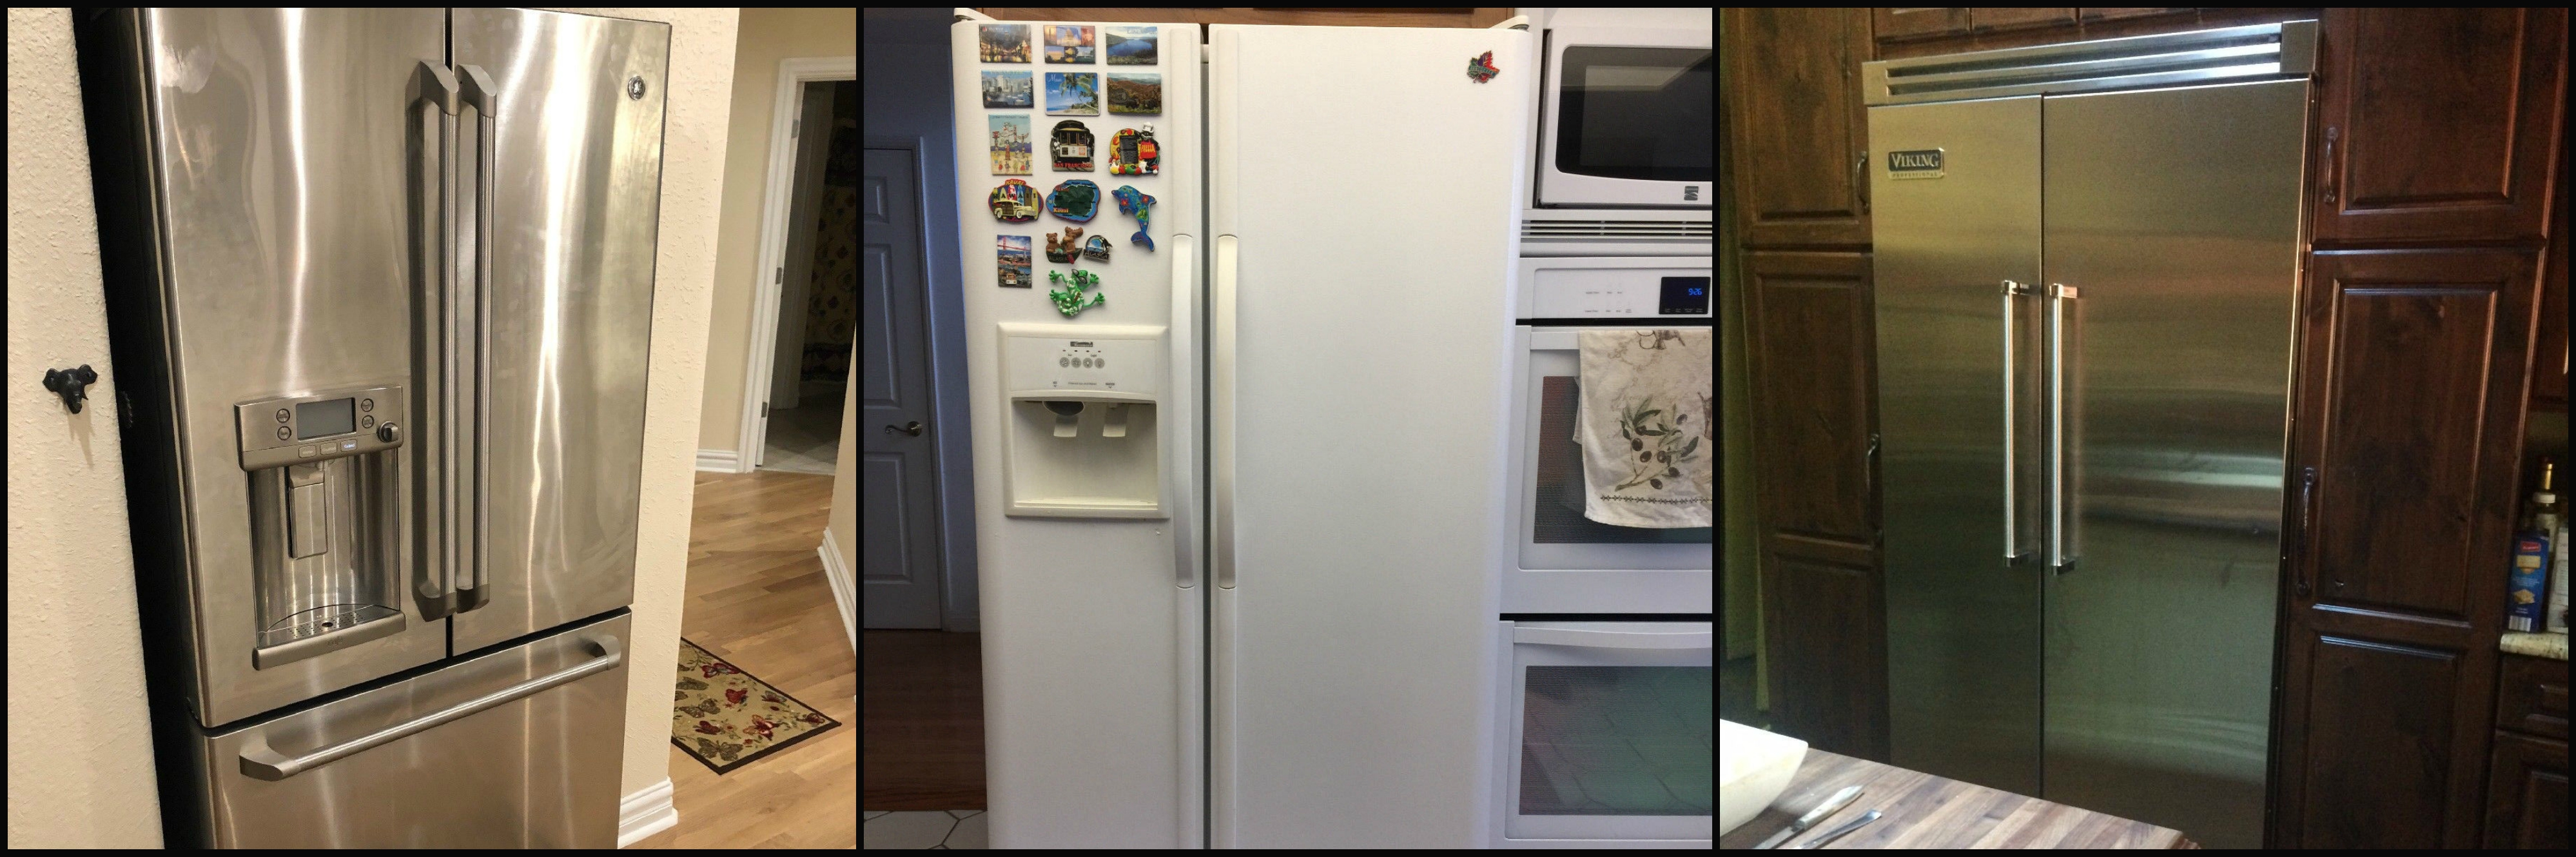 fridge repair palmdale